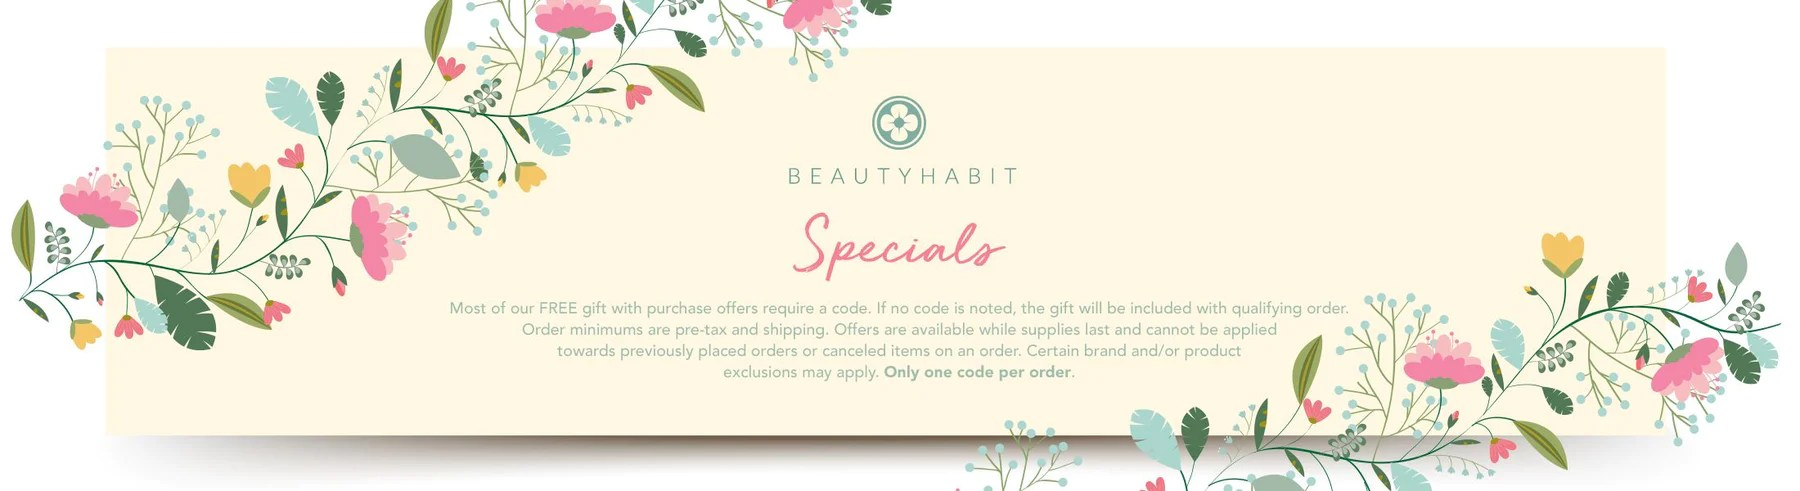 Maisons Du Monde Discount Code Special Offers Free Gifts Beautyhabit